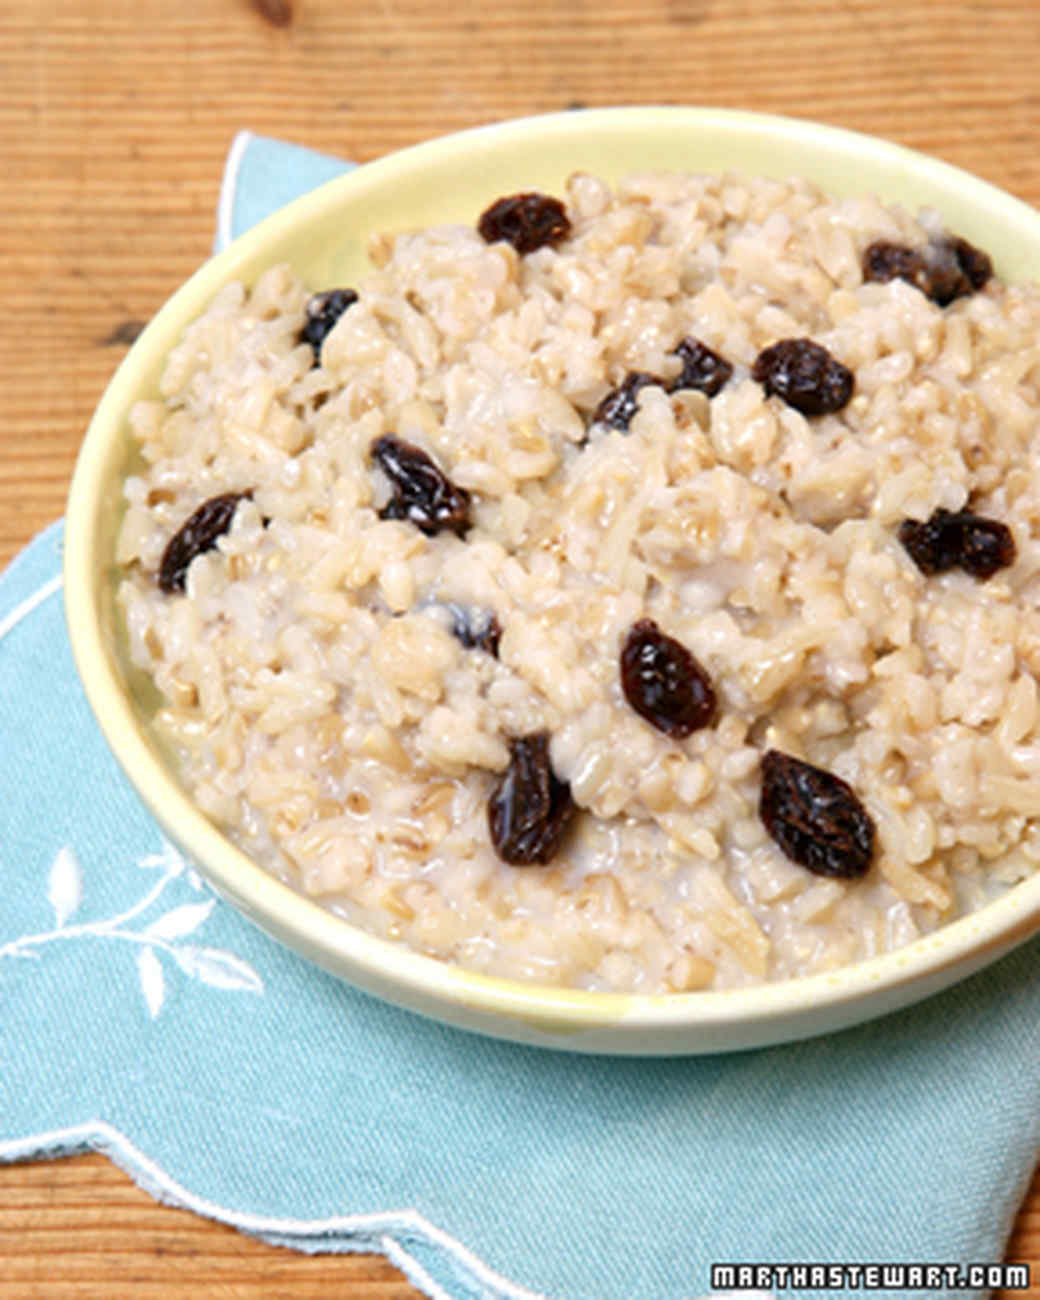 1086_recipe_oatmeal.jpg